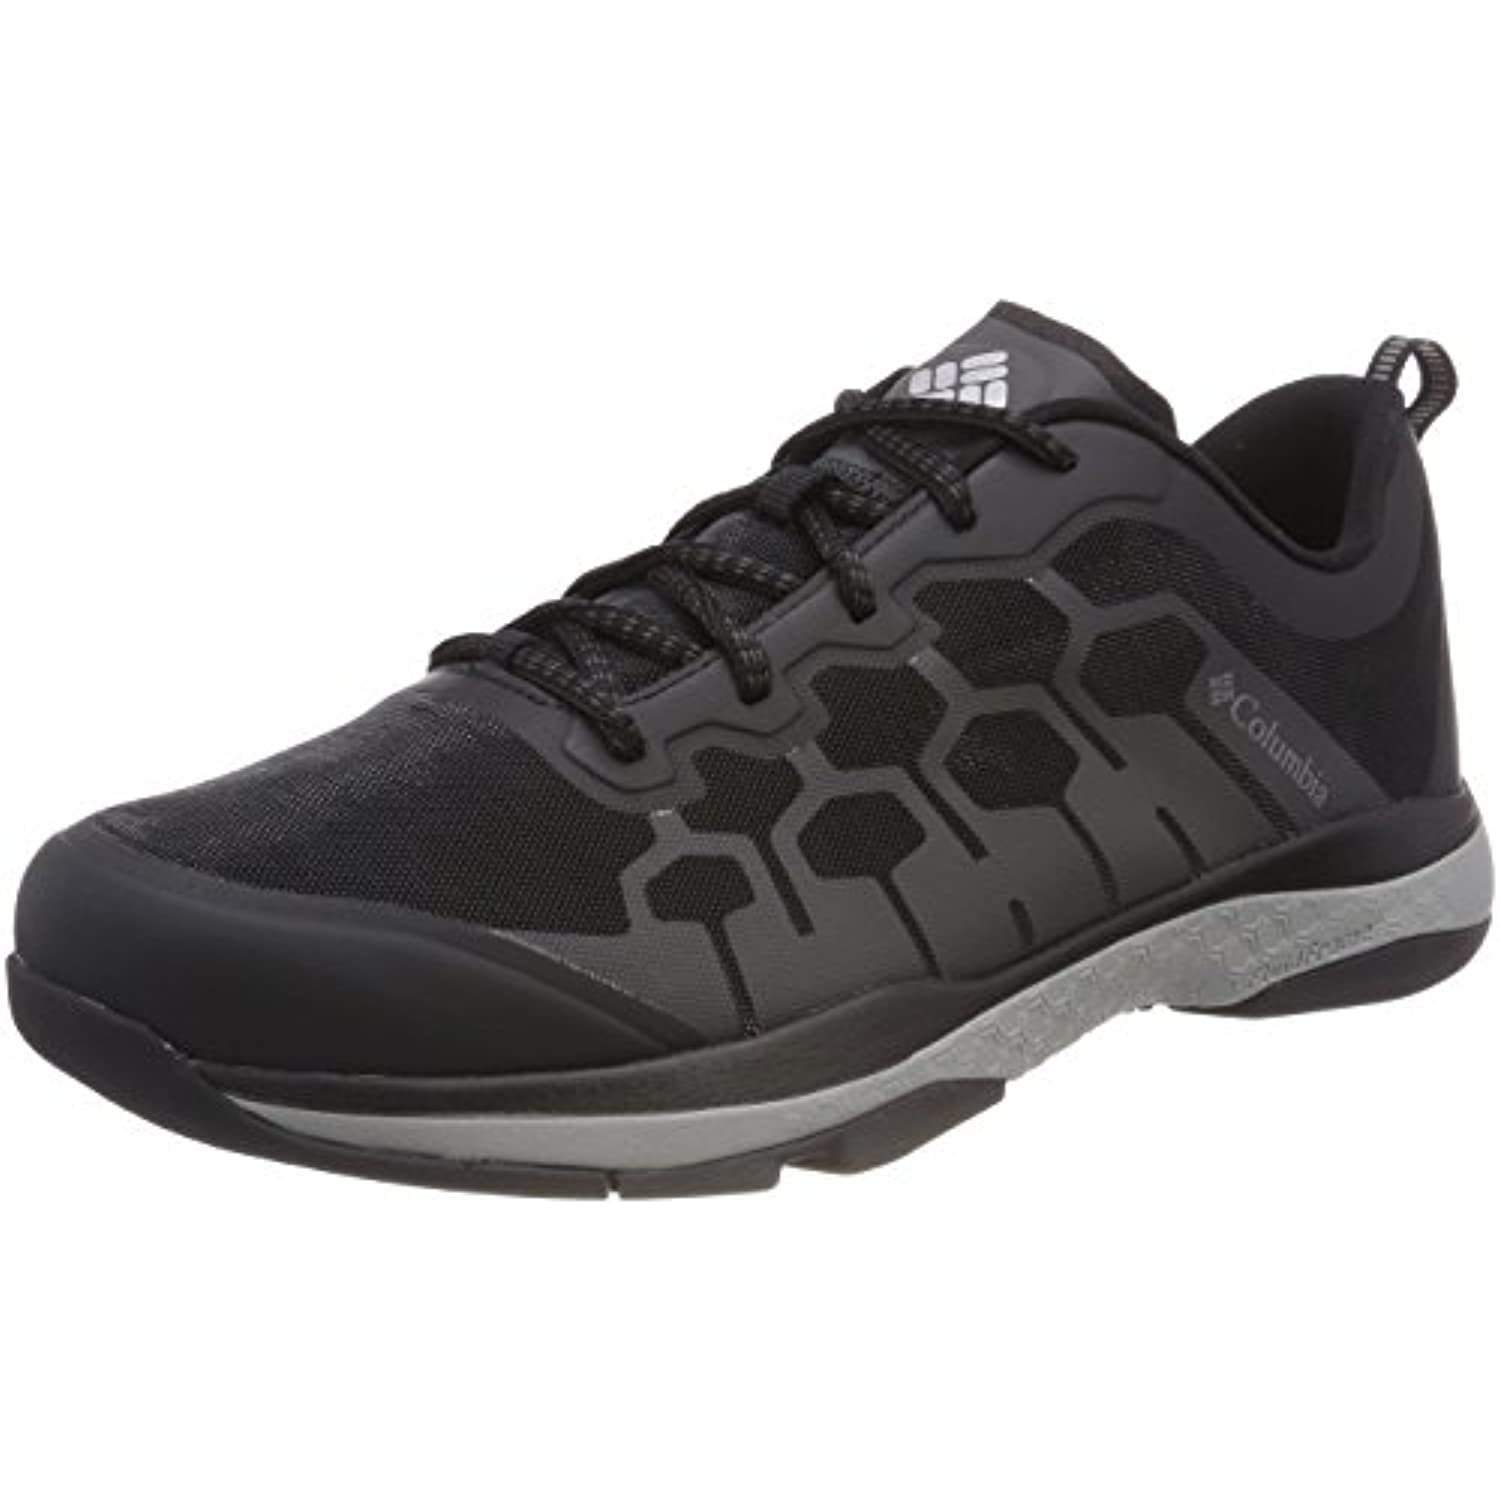 Columbia Homme Chaussures Multisport, ATS - TRAIL FS38 - B077312LZ9 - ATS 596d4a